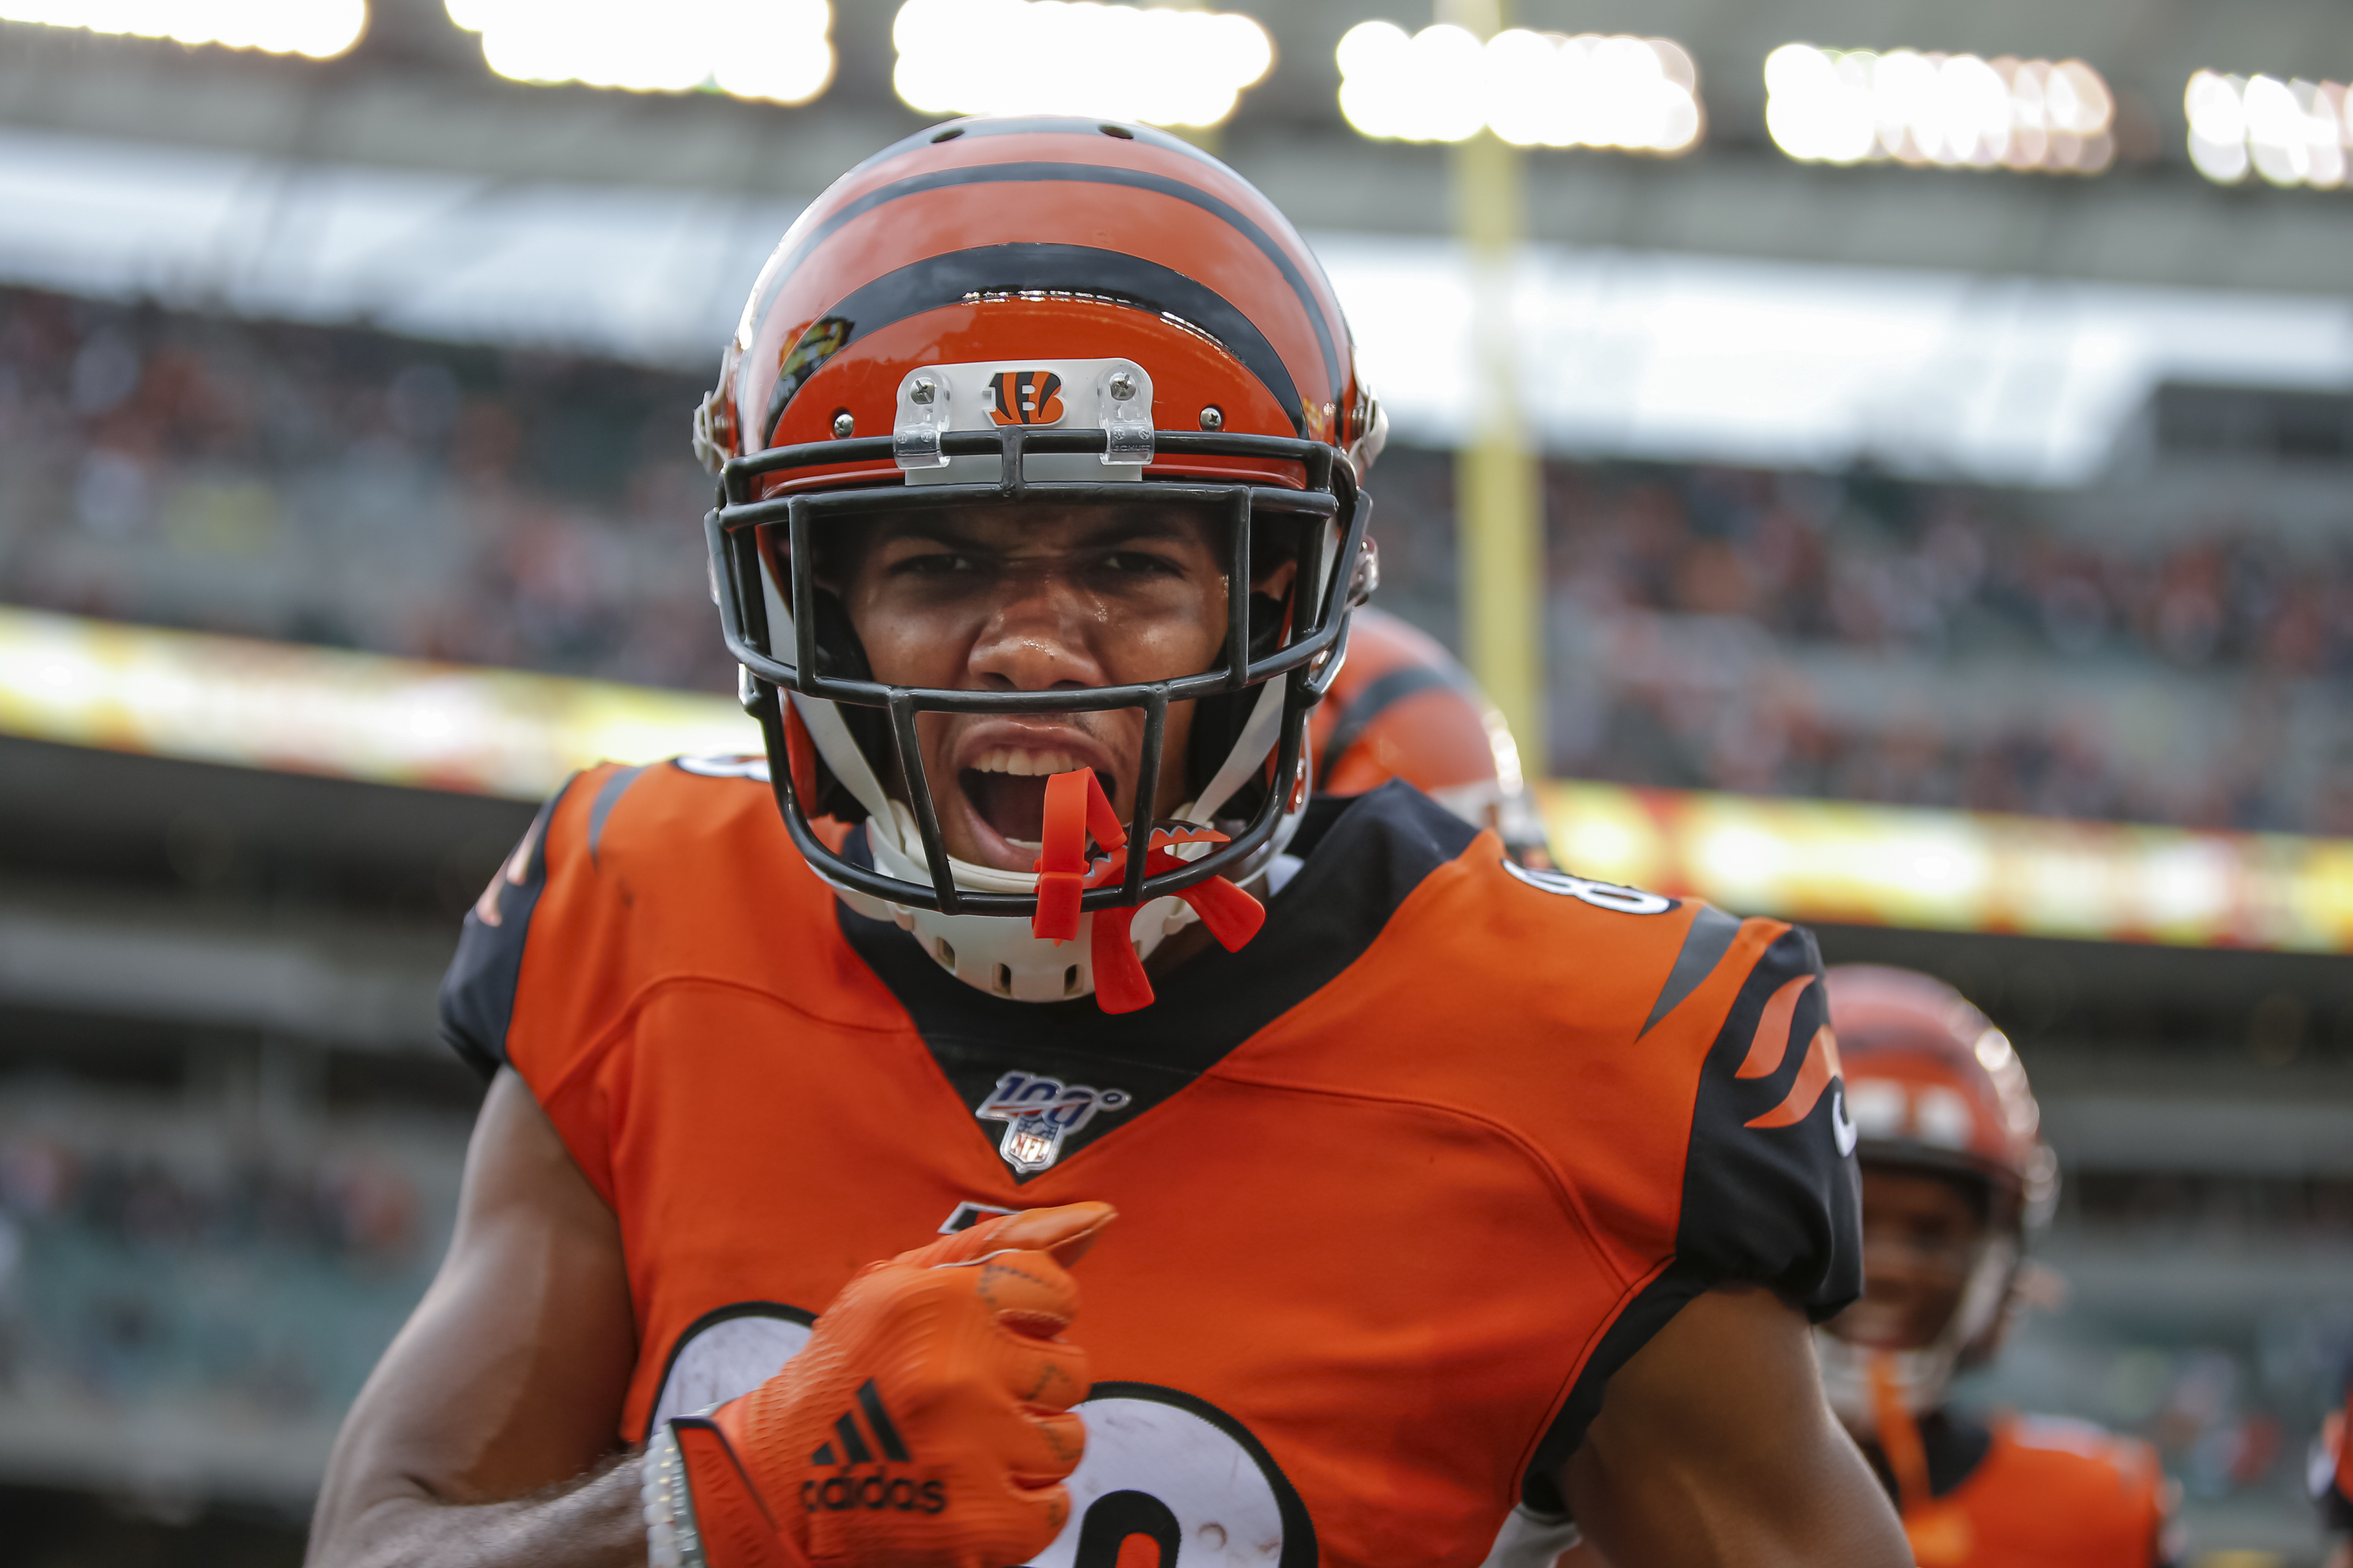 Tyler Boyd will be the Bengals' top receiver in 2020, not A.J. Green